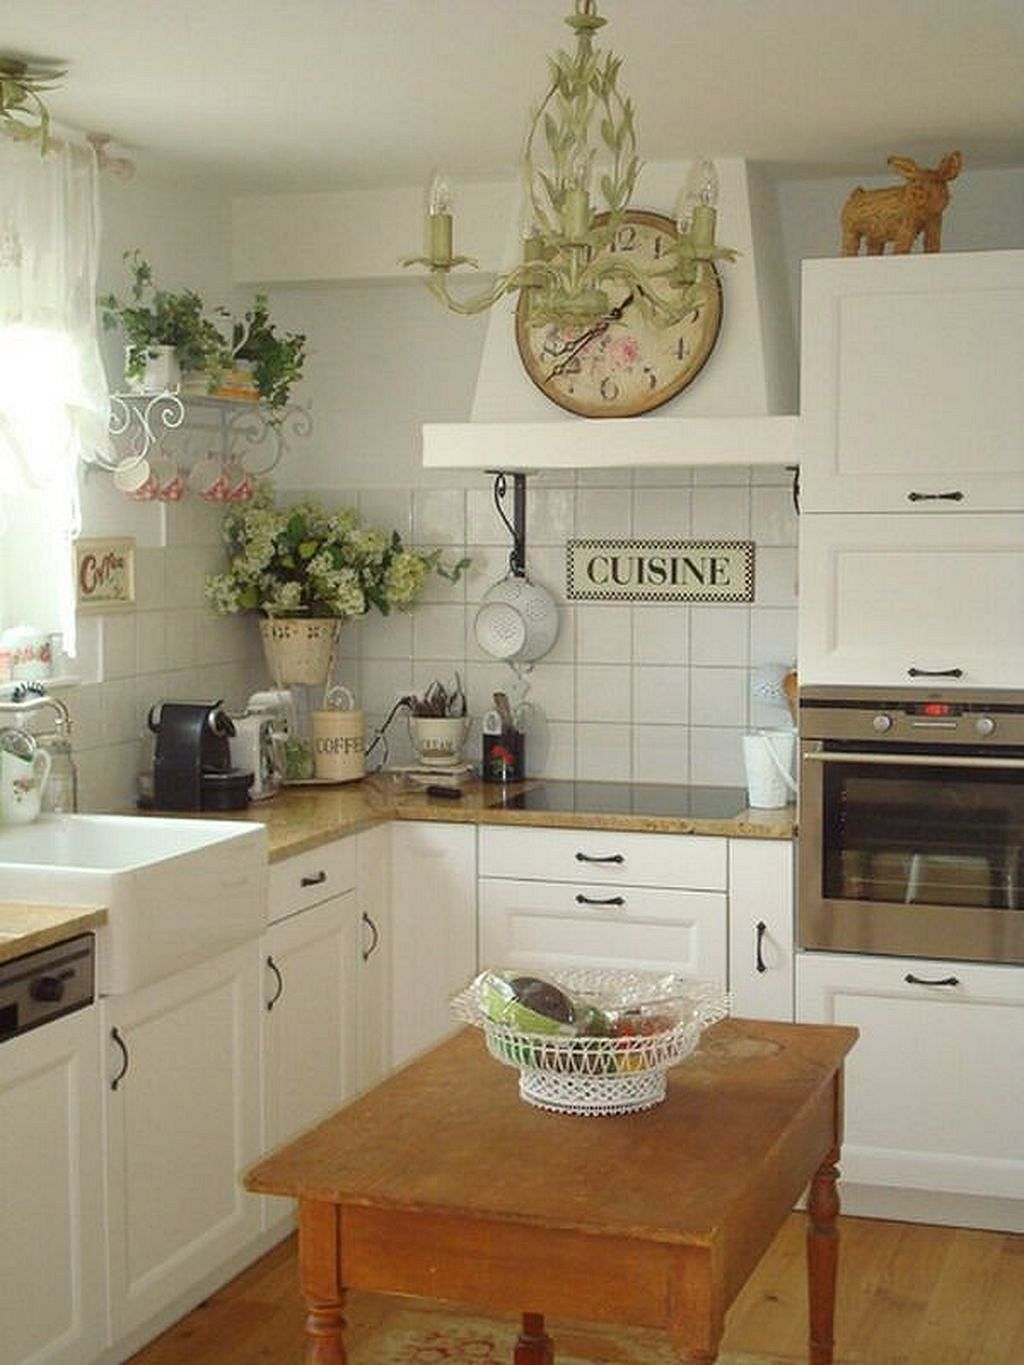 30 modern french country kitchen design ideas with images small french country kitchen on kitchen remodel french country id=63081